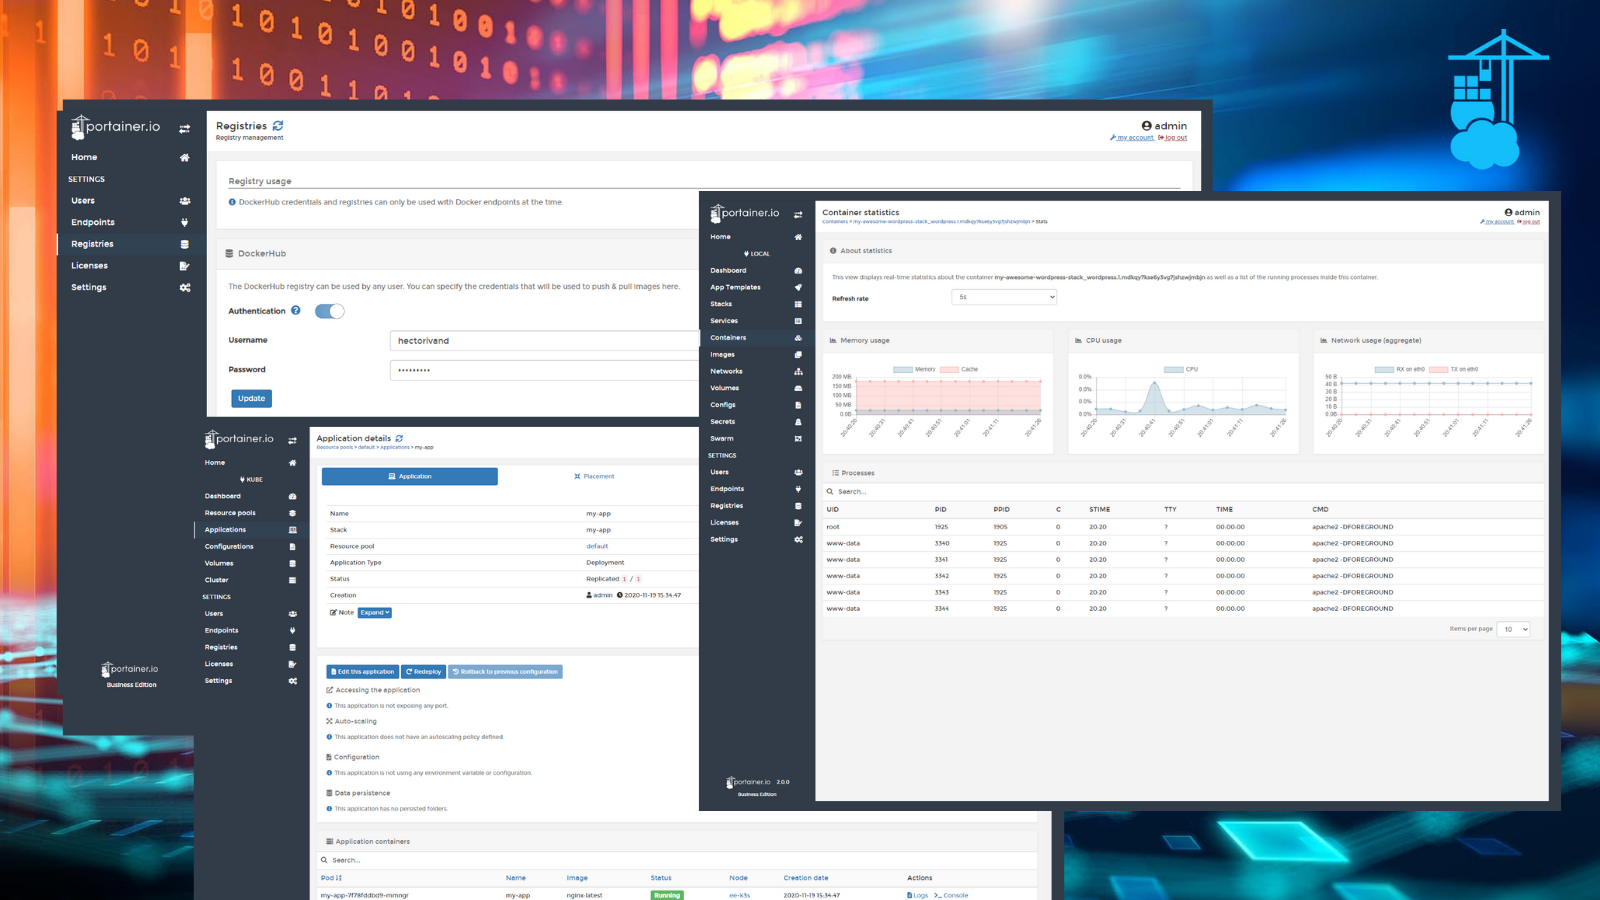 Portainer Launches Business Edition for Enterprise Container Management